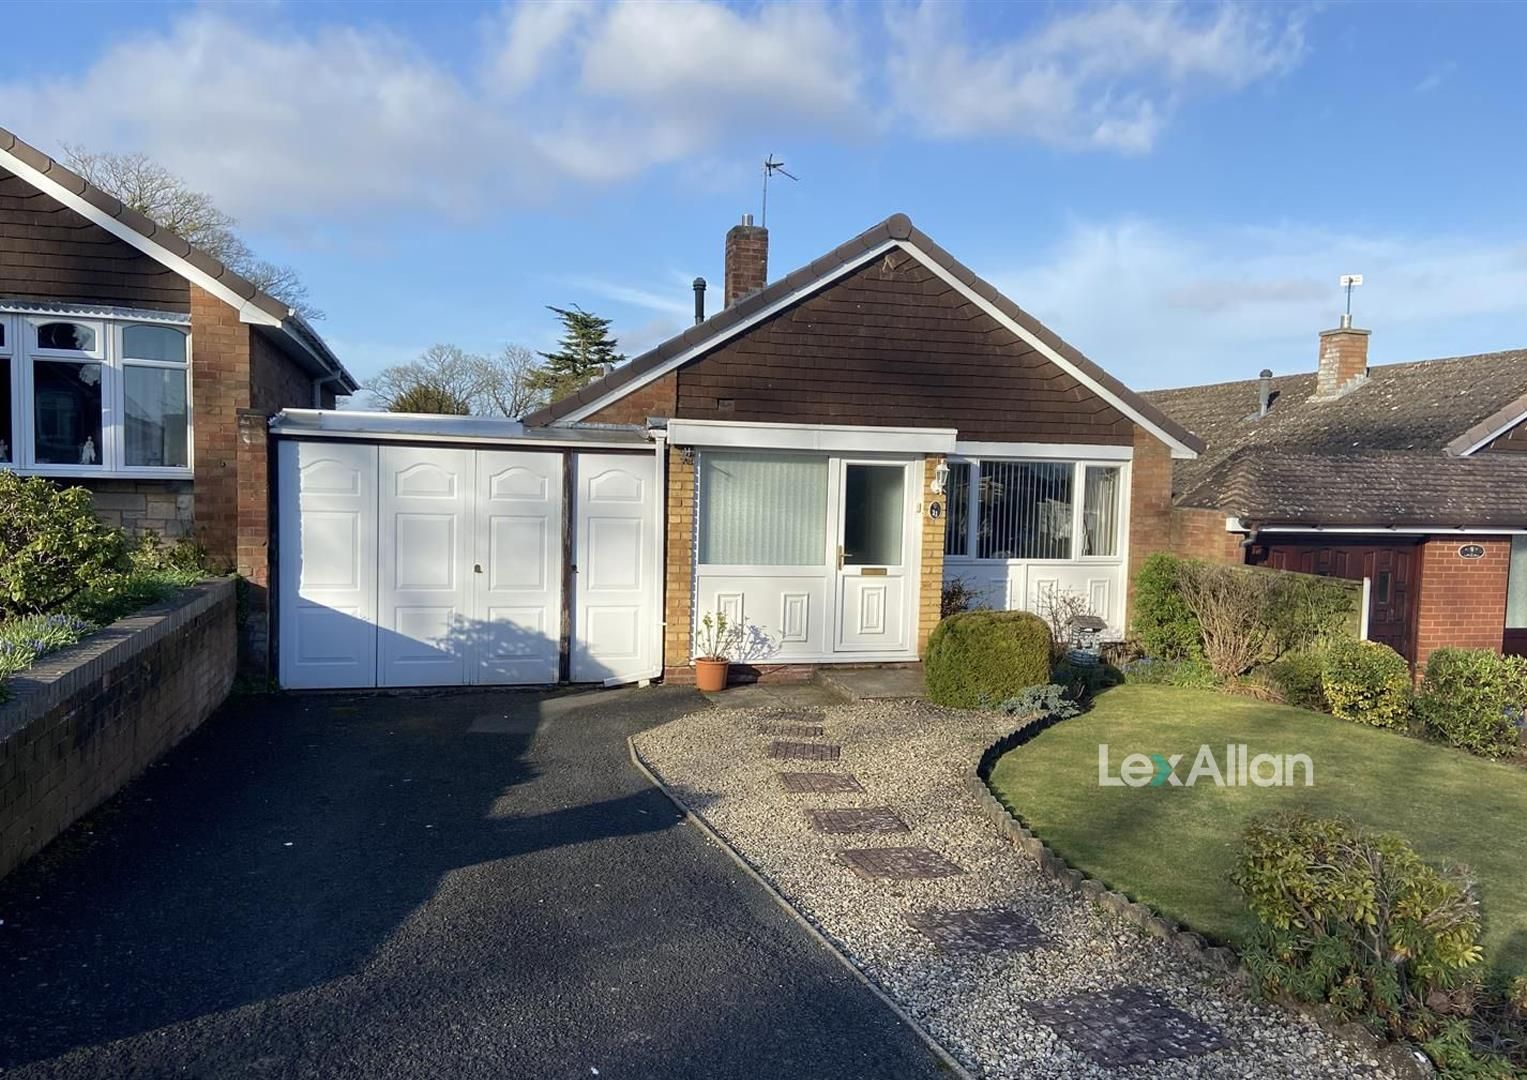 2 bed detached-bungalow for sale in Wollaston, DY8